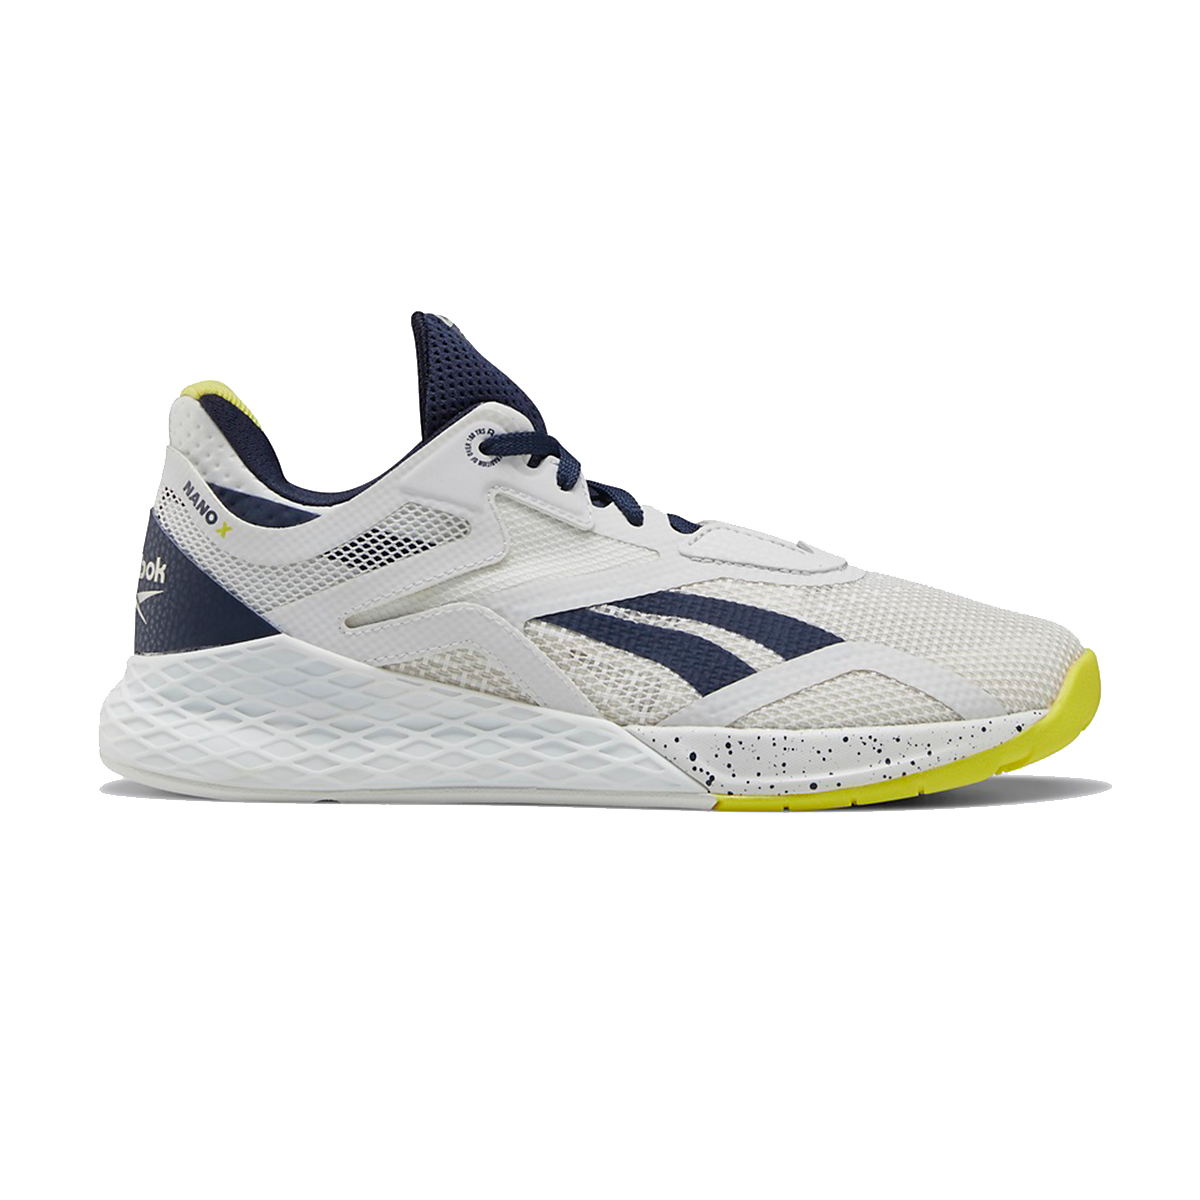 Women's Reebok Nano X Training Shoe - Color: True Grey/Vector Navy/Chartreuse - Size: 5 - Width: Regular, True Grey/Vector Navy/Chartreuse, large, image 1